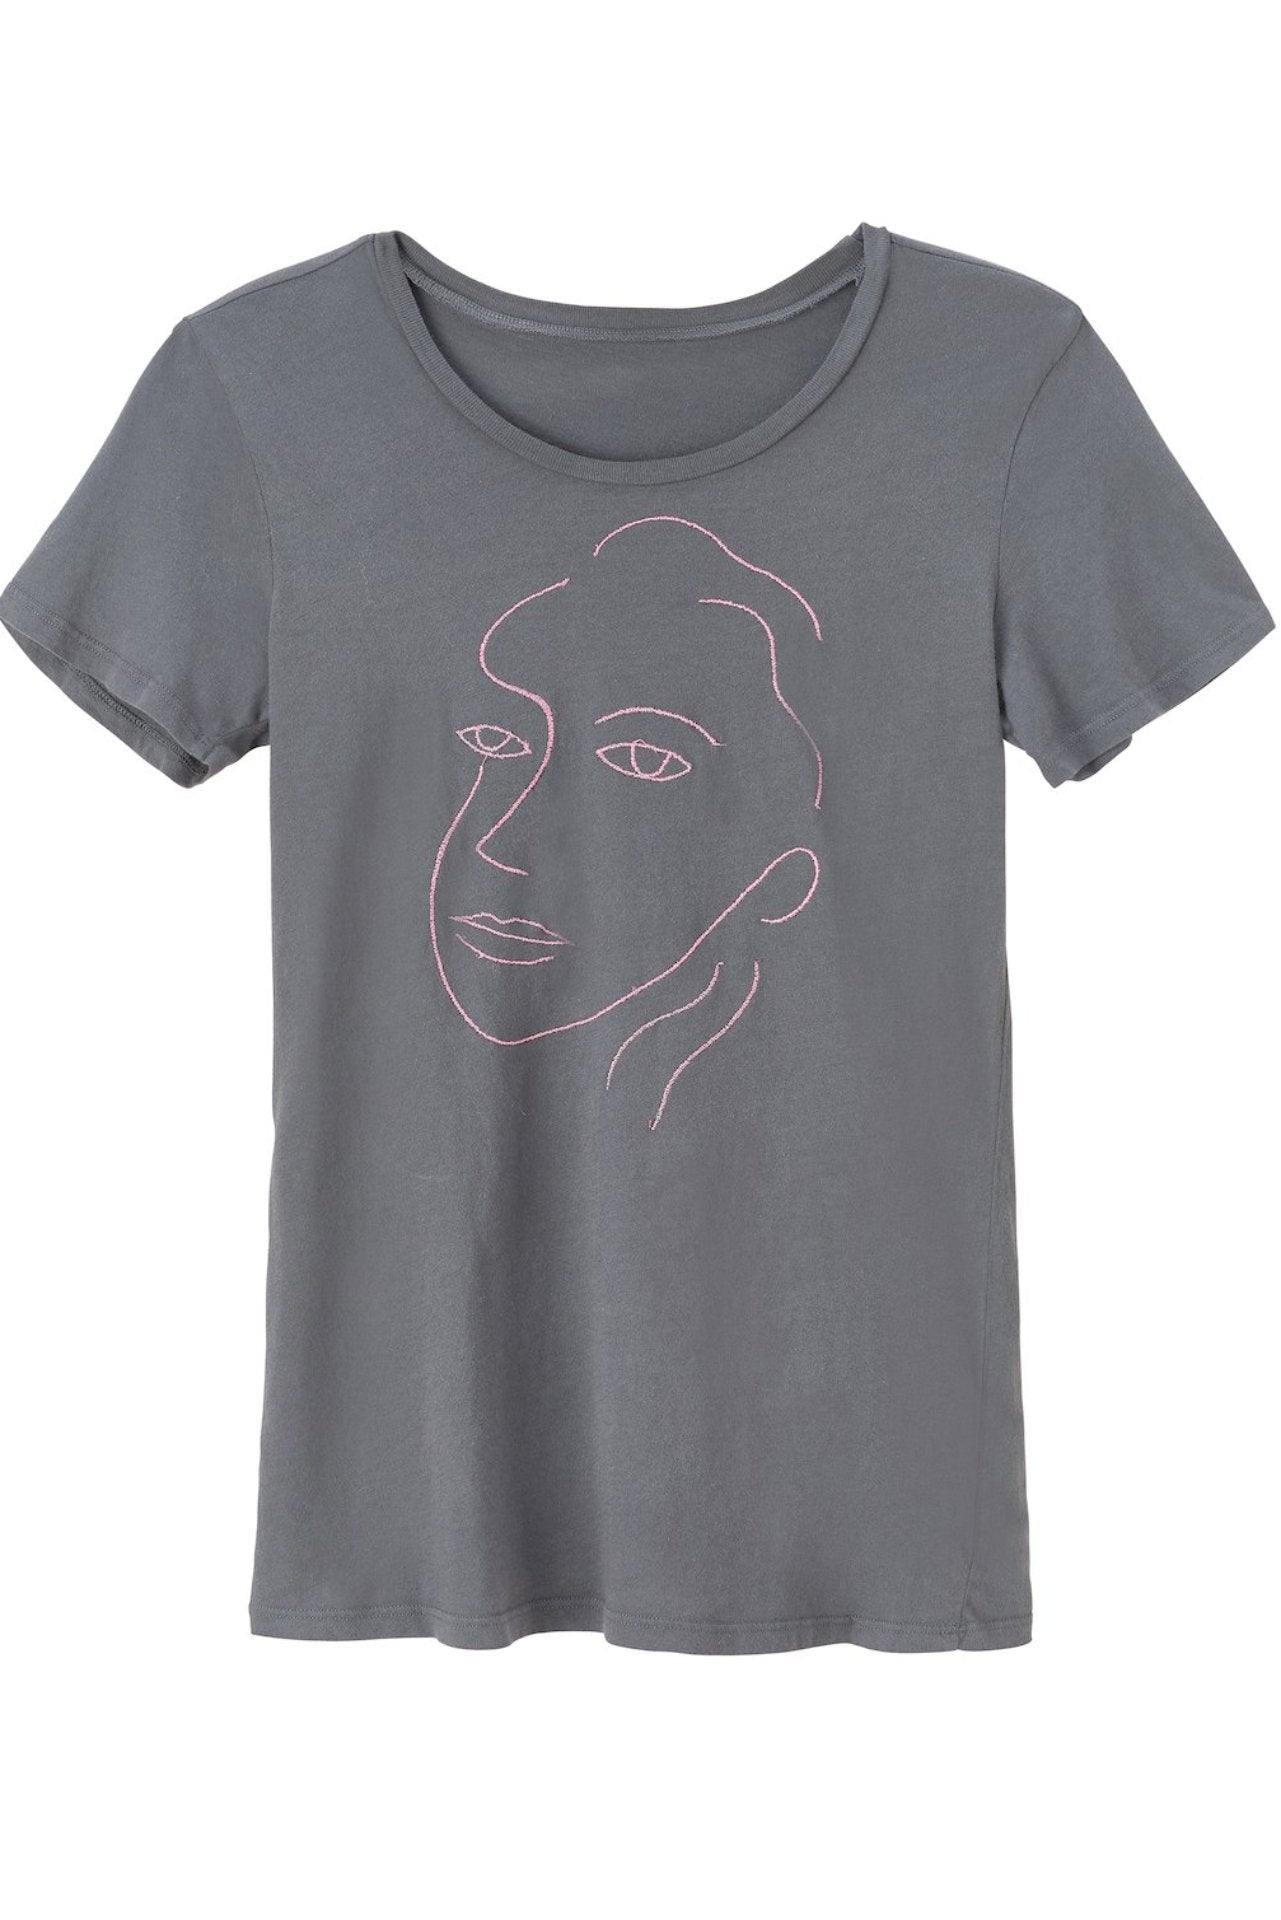 Relaxed gray t-shirt